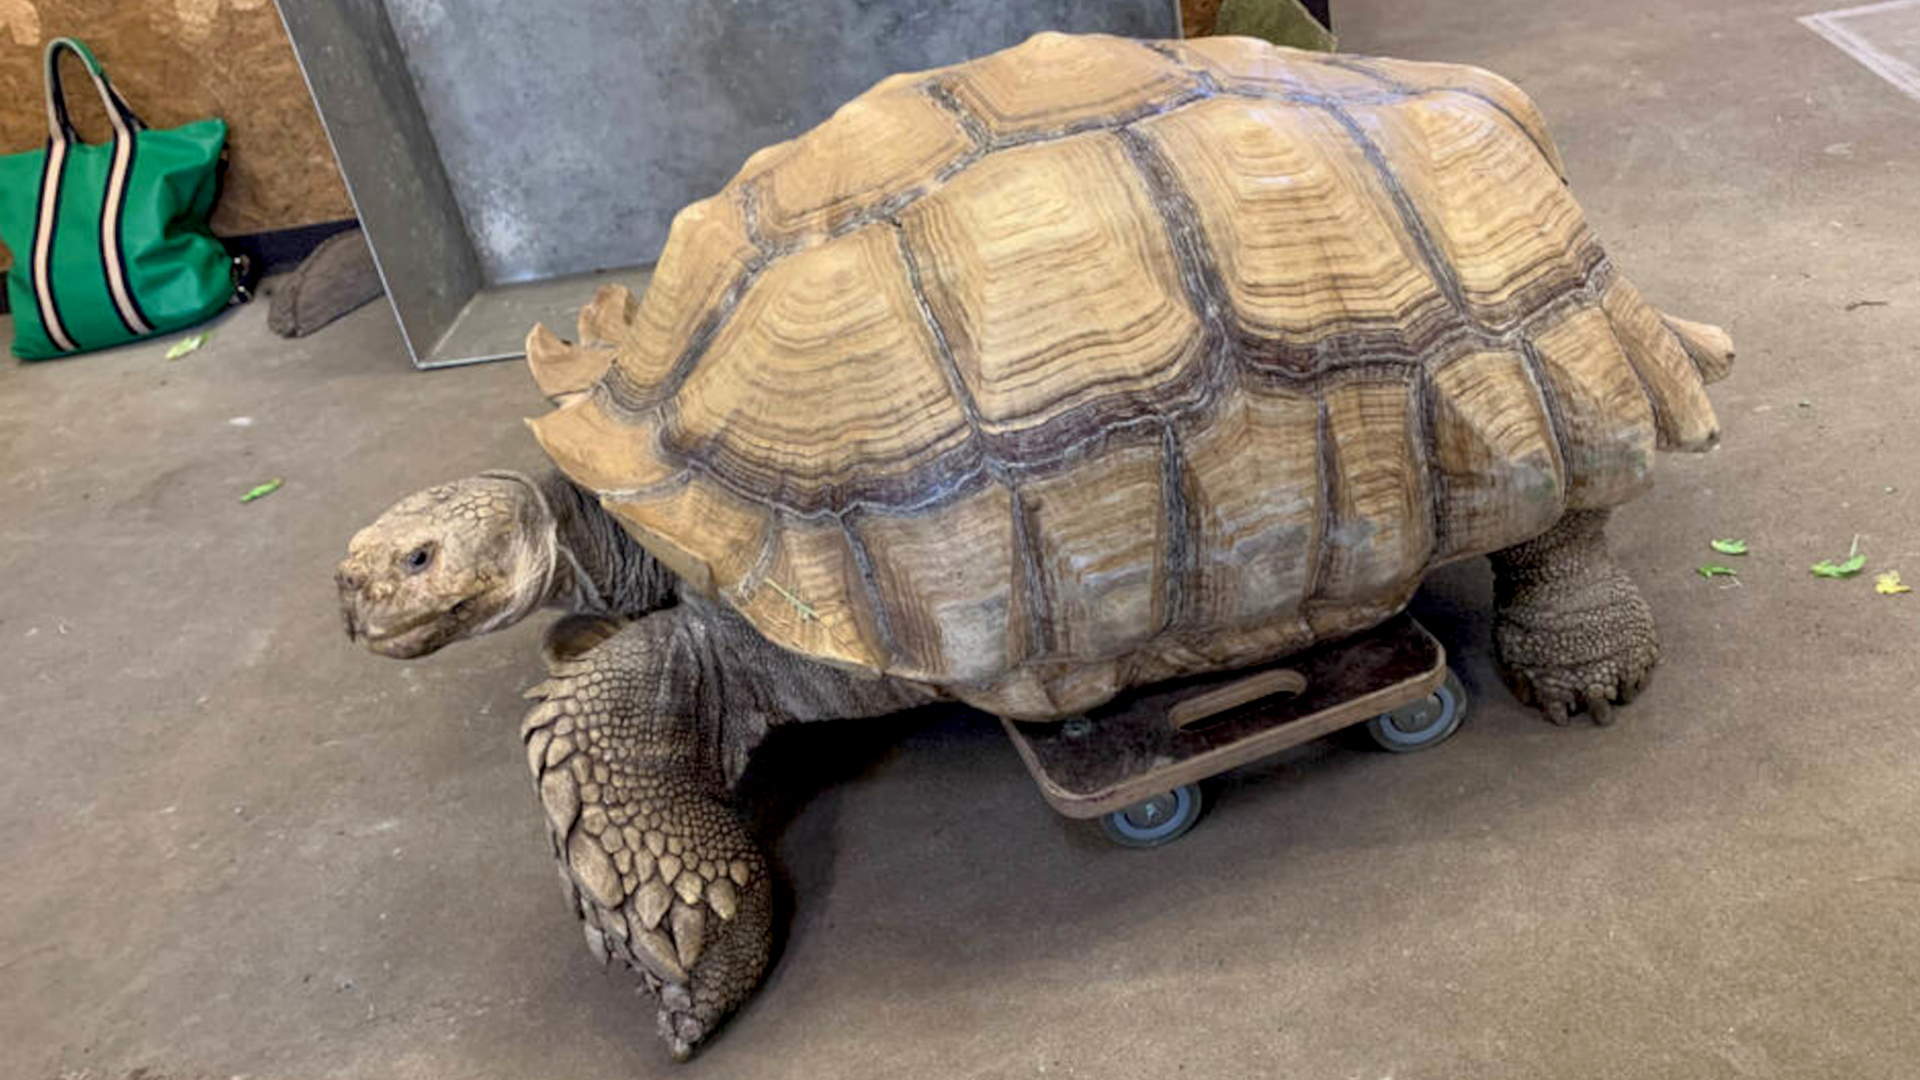 VIDEO: Wheel Fast: Giant Tortoise With Injured Legs Given Skateboard To Get About